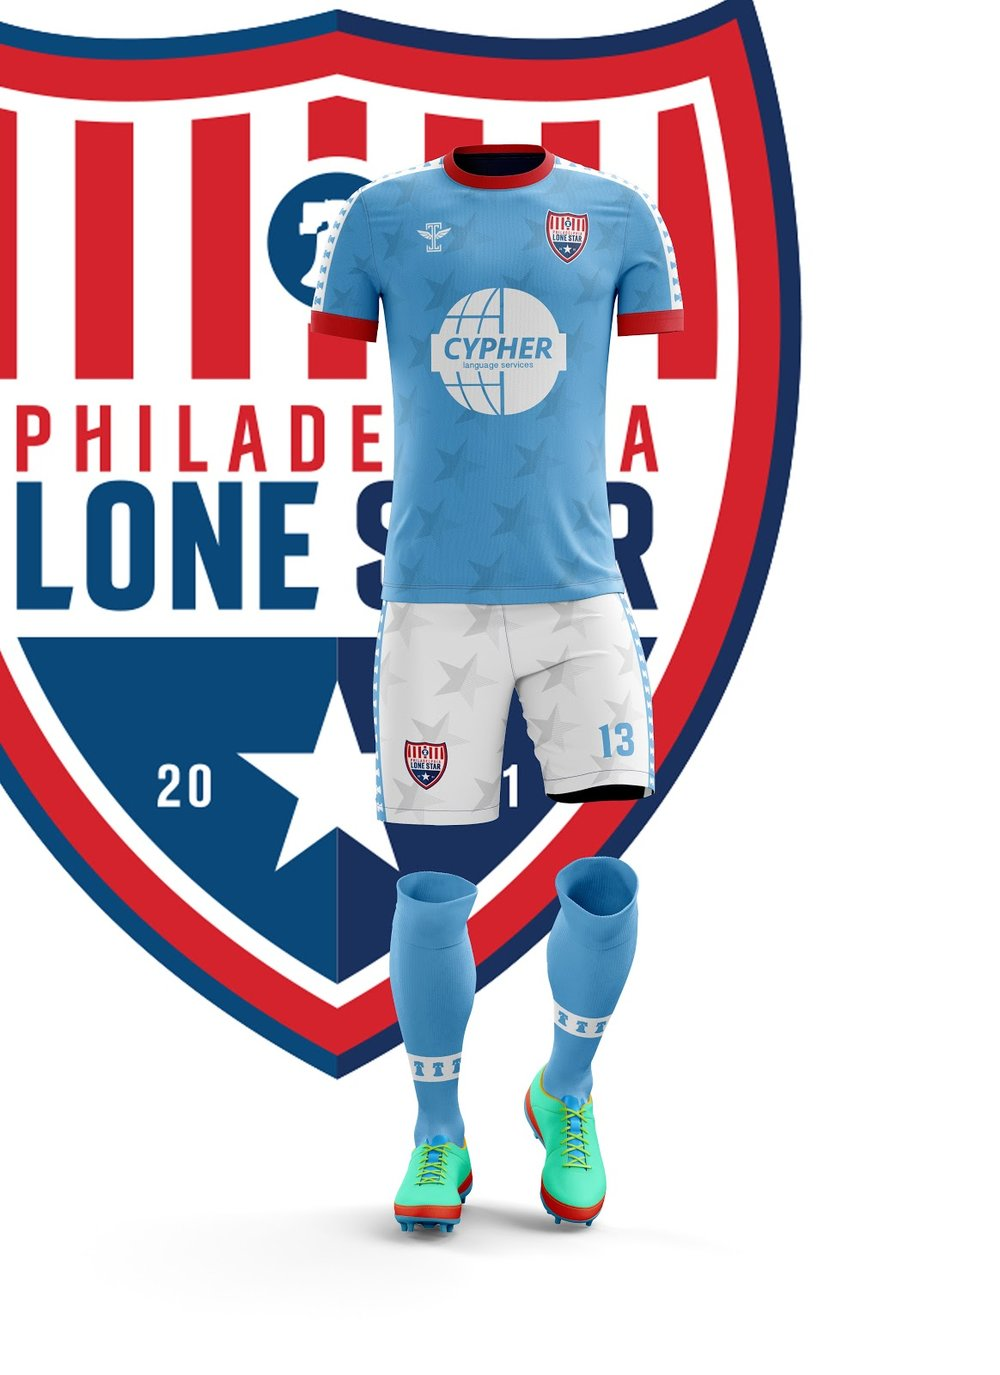 Philadelphia Lone Star Sky Blue Star Kit.jpg